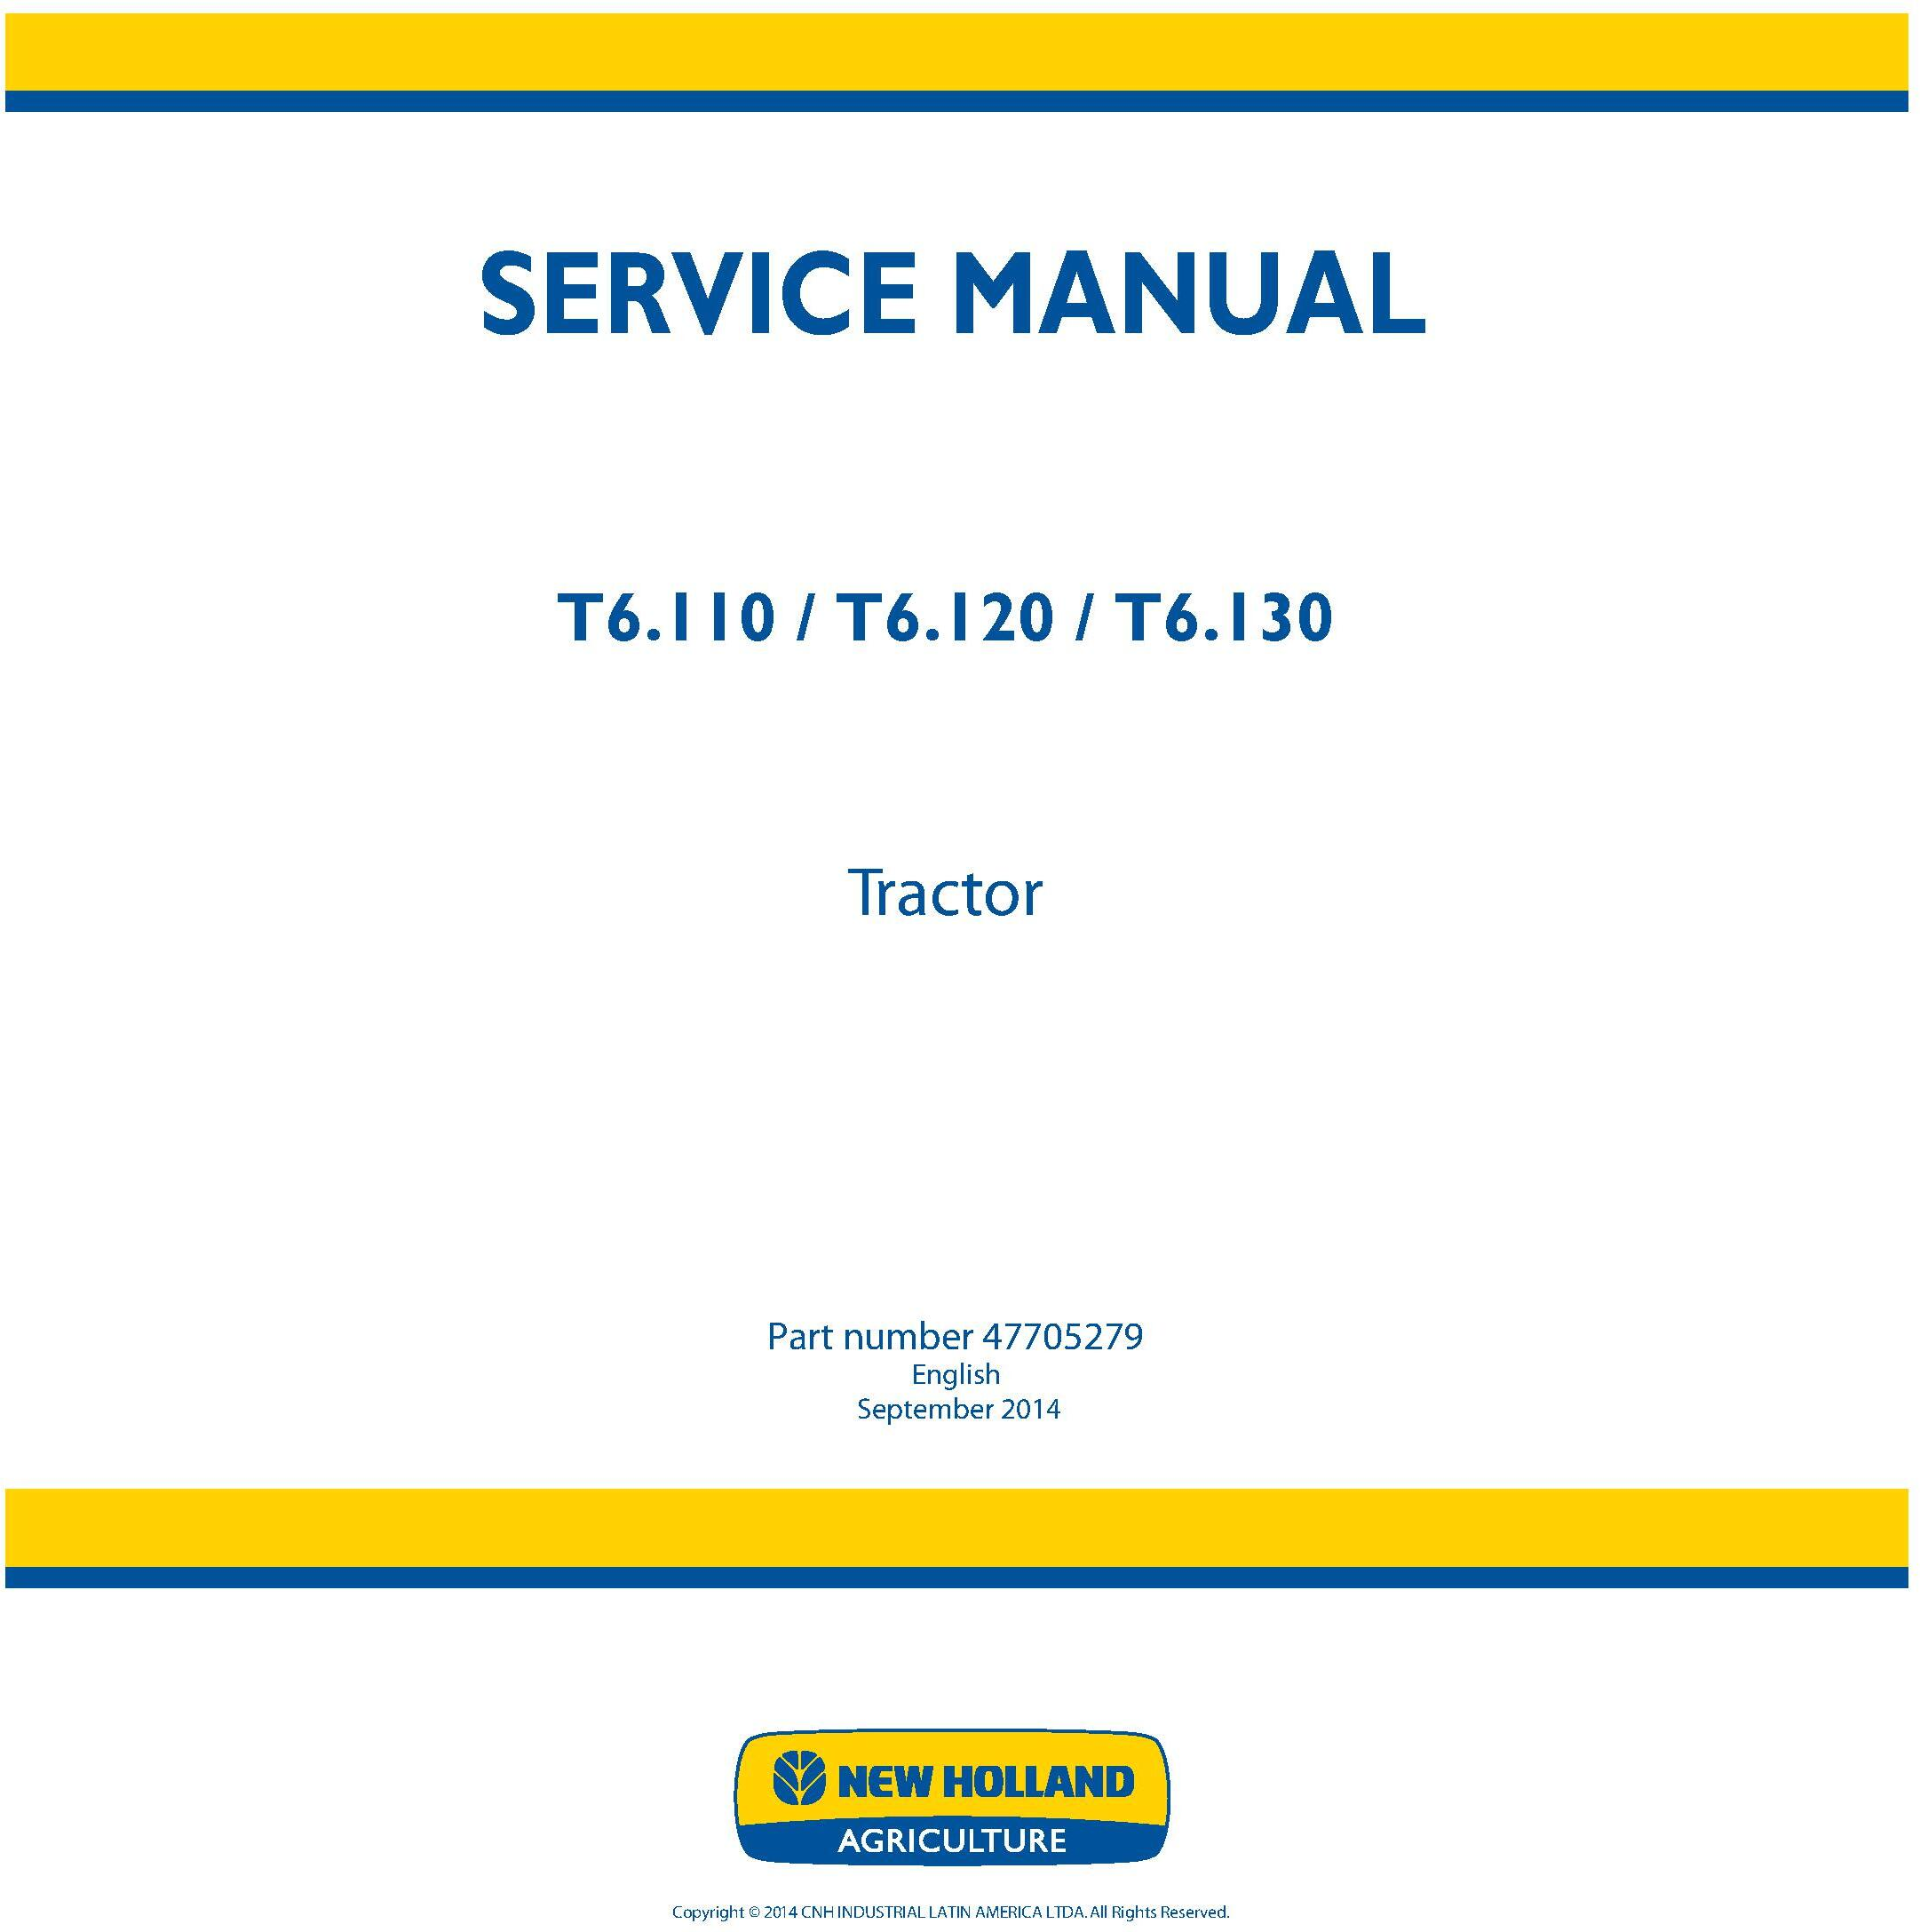 New Holland T6.110, T6.120, T6.130 Tractor Service Manual (Latin America) - 19404